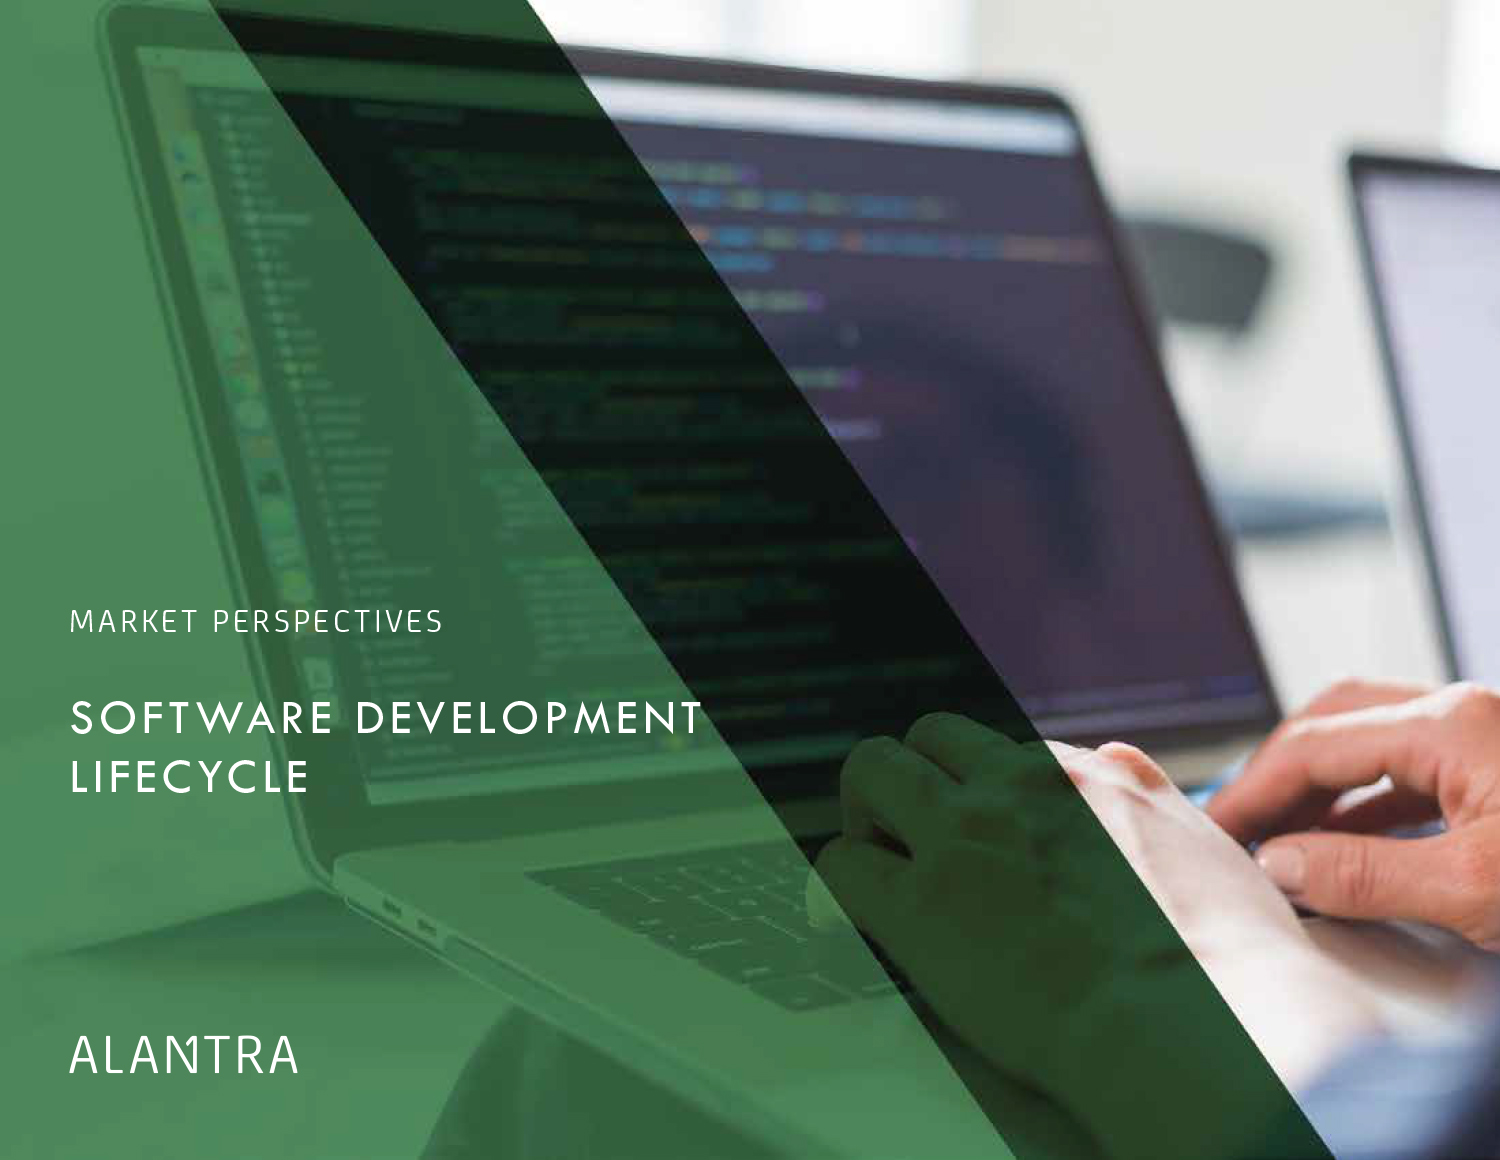 Software Development Lifecycle - Digital business and DevOps shift driving substantial change and burden on Enterprise IT operations. Legacy systems and processes need to connect with modern systems of engagement and rapid development cycles. Rapid growth in sector has created a population of point solution providers and hand full of large private leaders. Healthy M&A consolidation occurring and we expect it to continue.